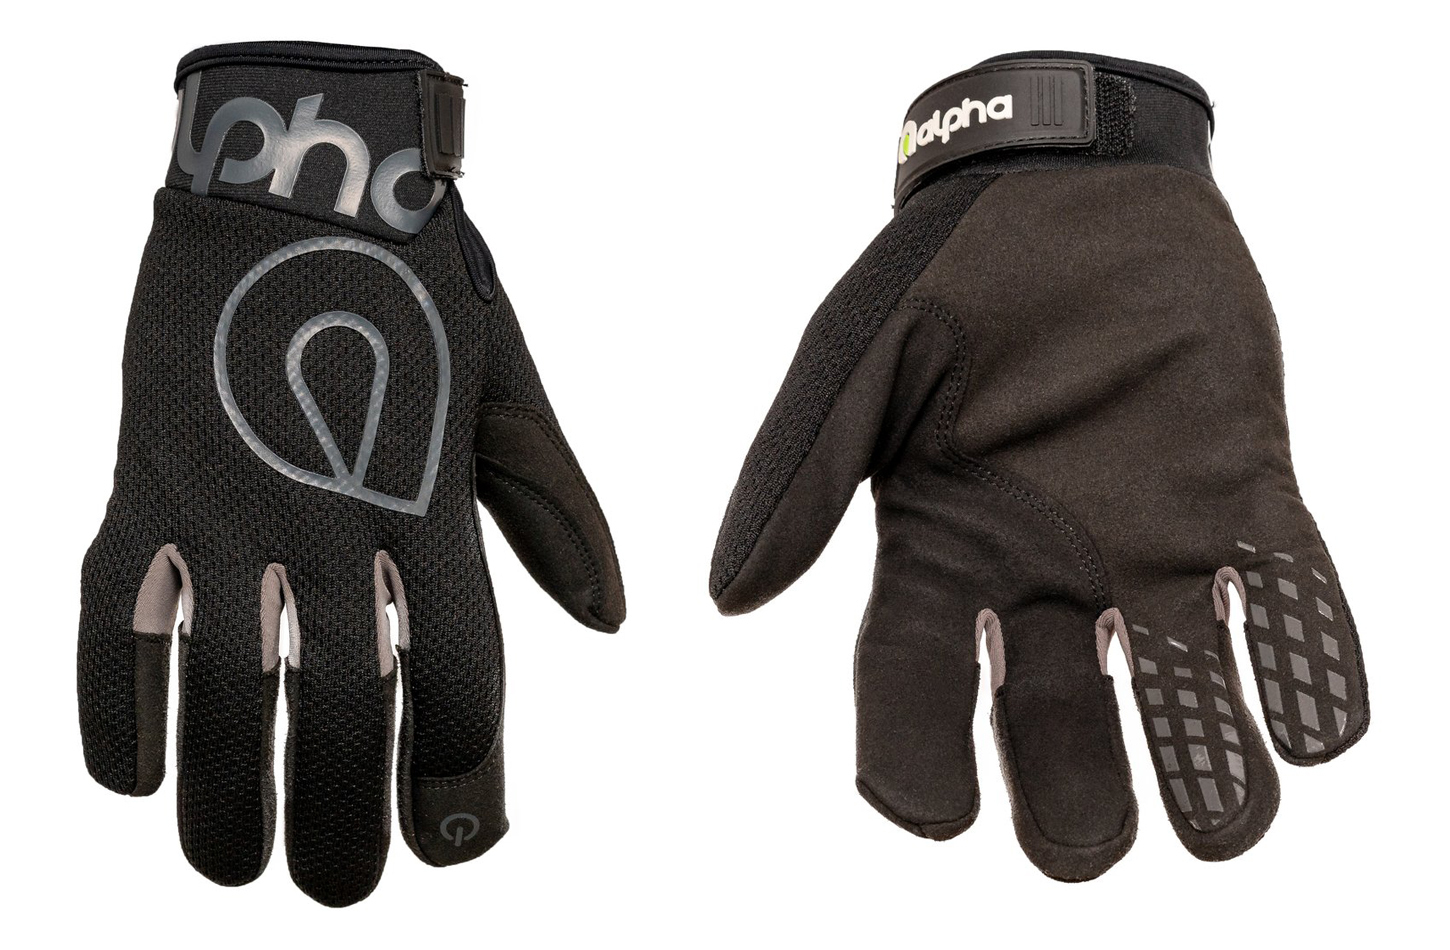 Alpha Gloves AG02-01-L Gloves, Shop, The Standard, Hook and Loop Closure, Neoprene Cuff, Mesh Top, Touch Screen Capable, Synthetic Leather Palm, Black, Large, Pair